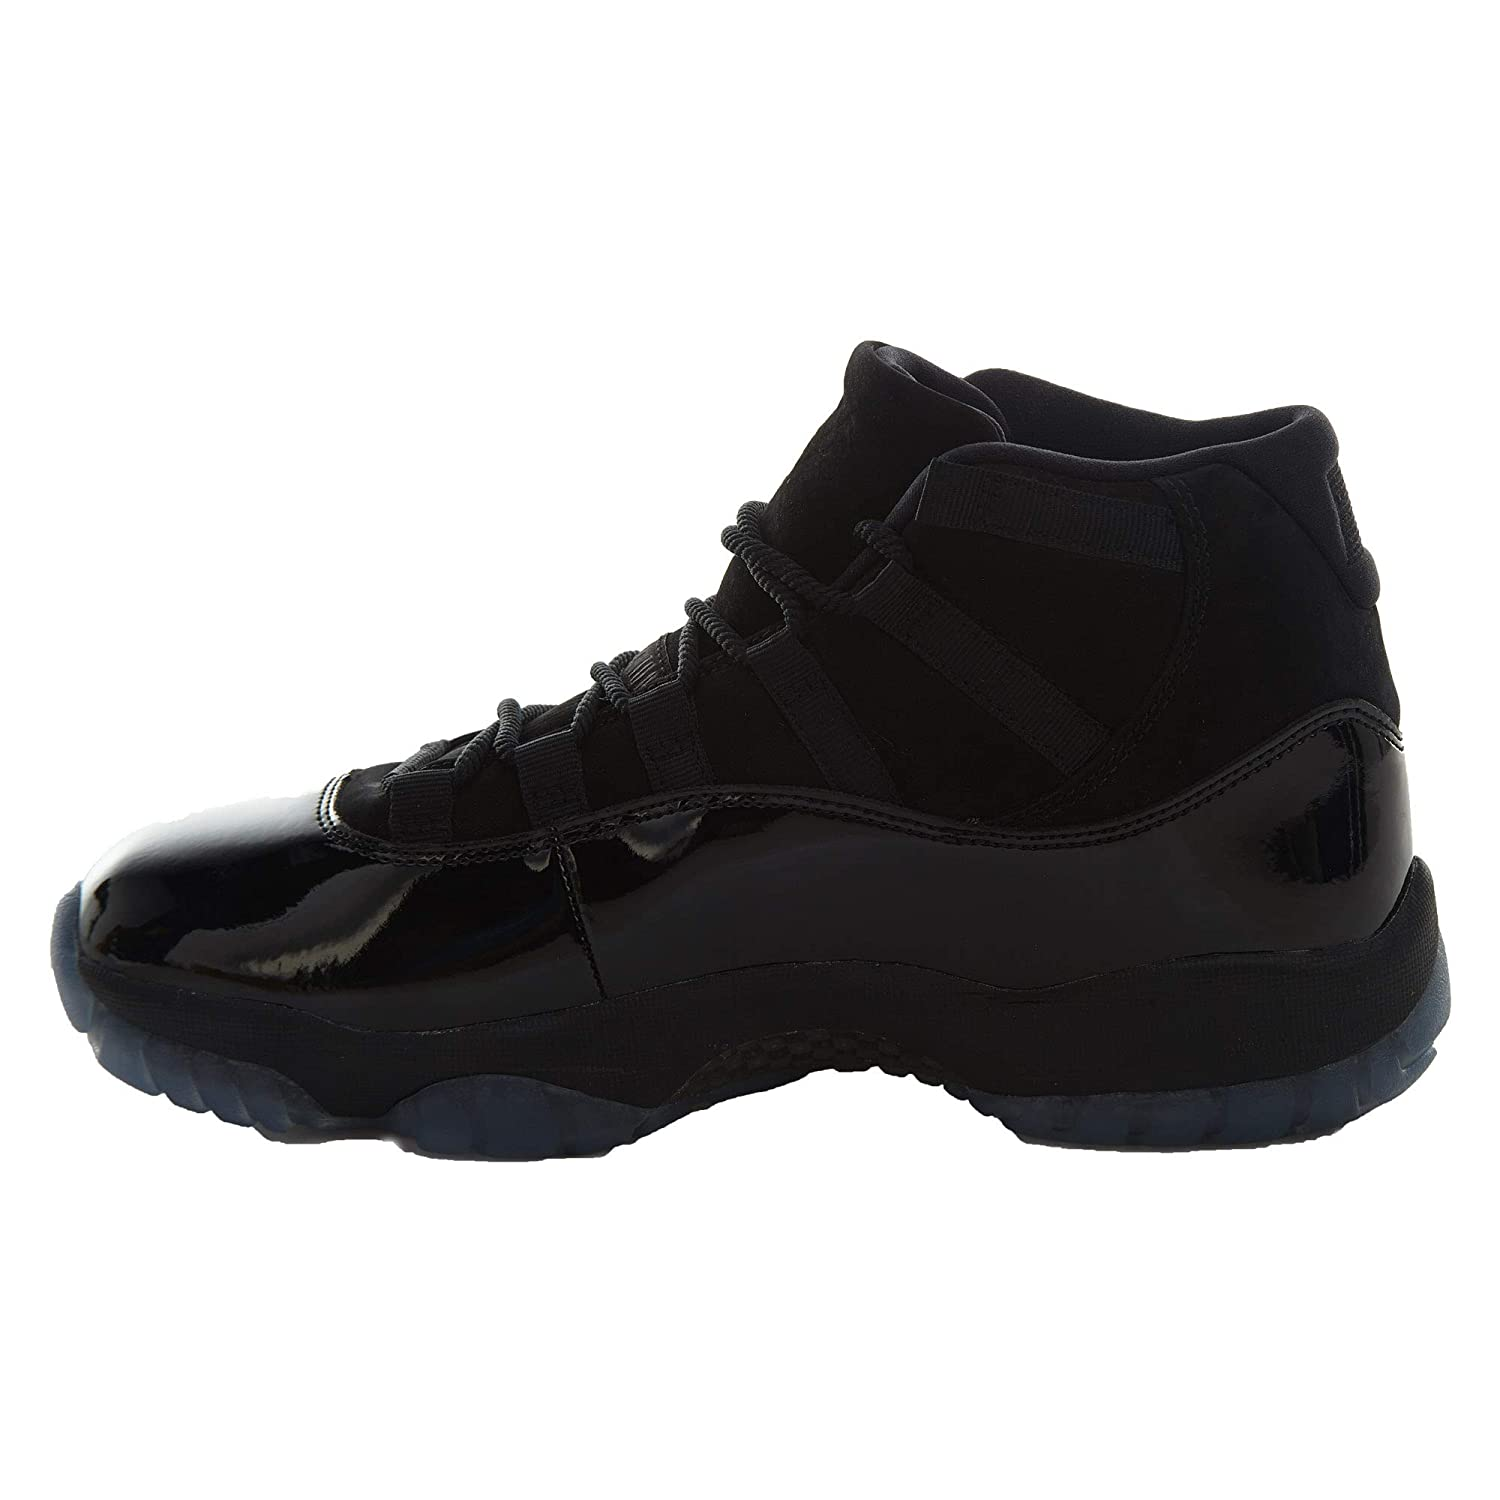 best service df1fe 8c007 Nike Mens Air Jordan 11 Retro Cap and Gown Black/Black-Black Suede Size 10